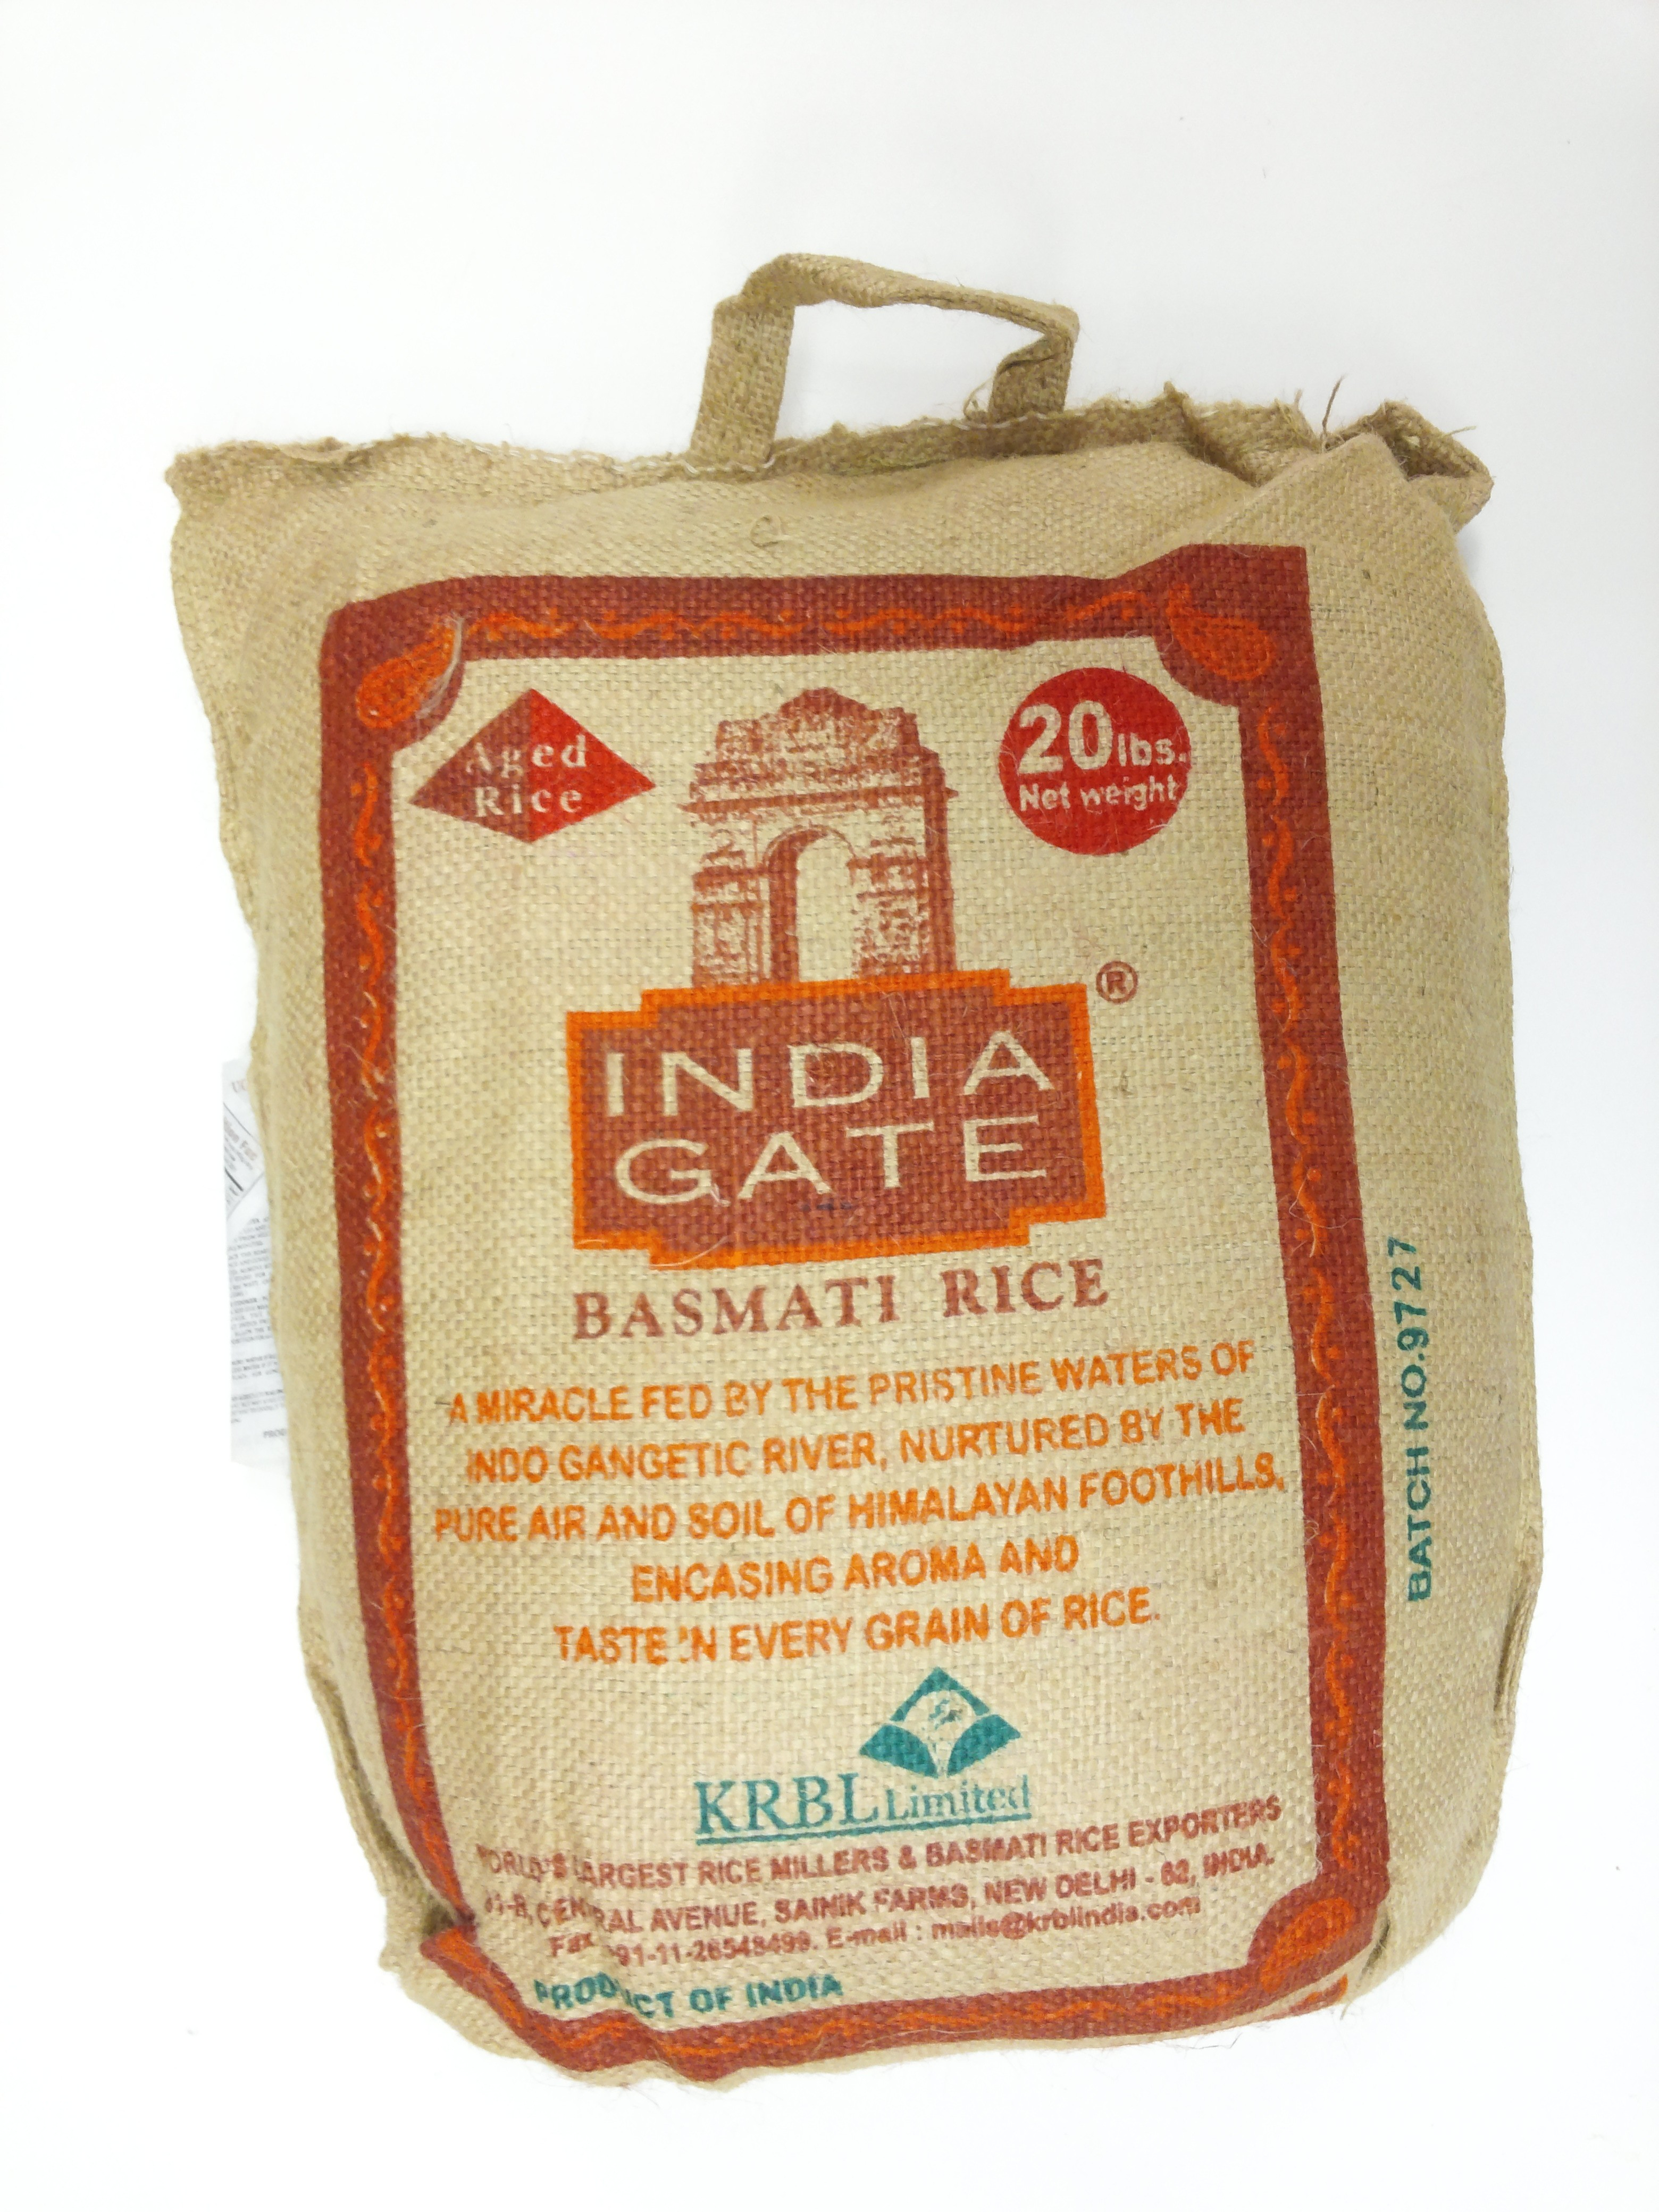 India Gate  Basmati Rice 20 lb